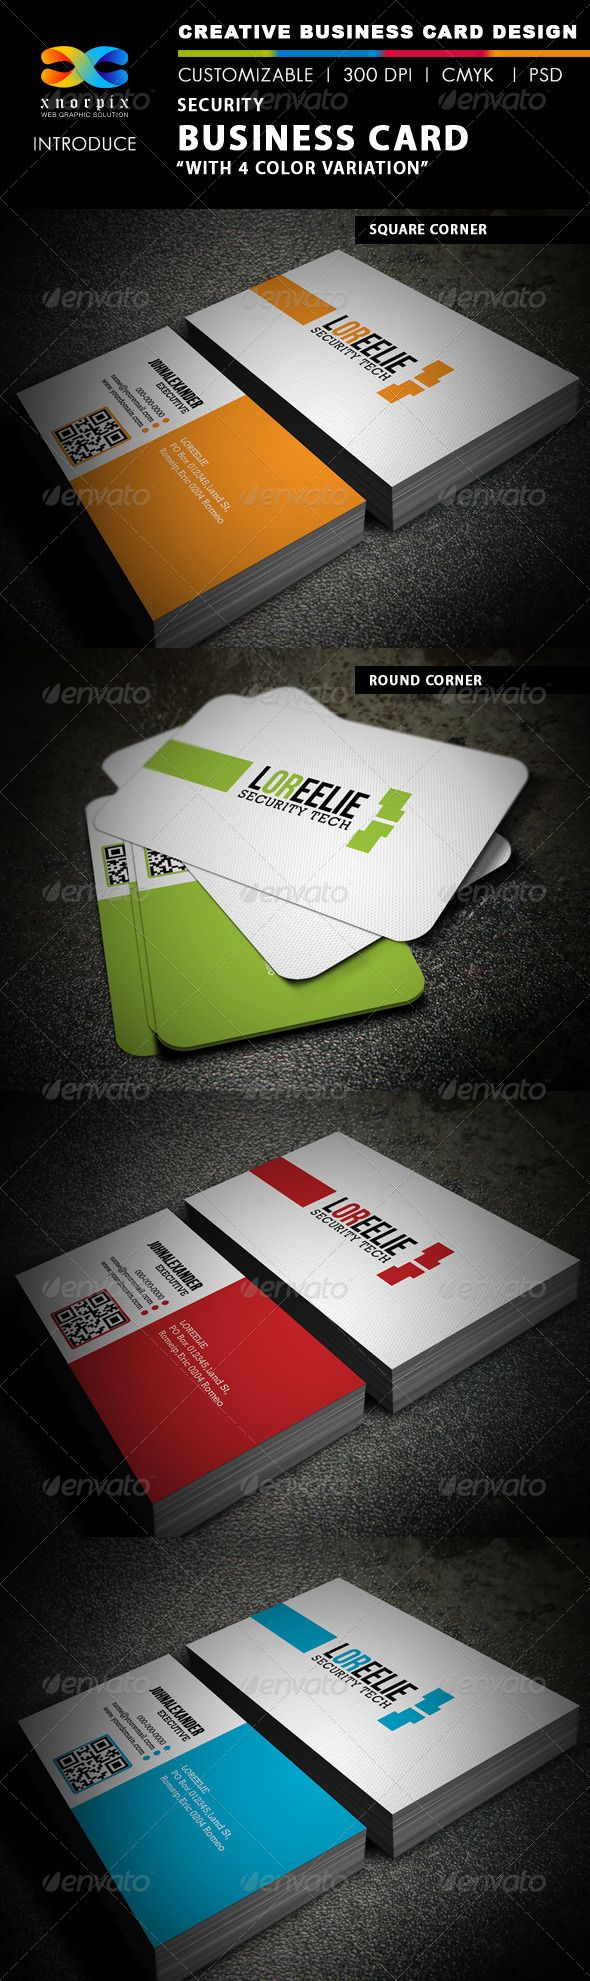 Security Business Card | Adobe photoshop, Business cards and Adobe